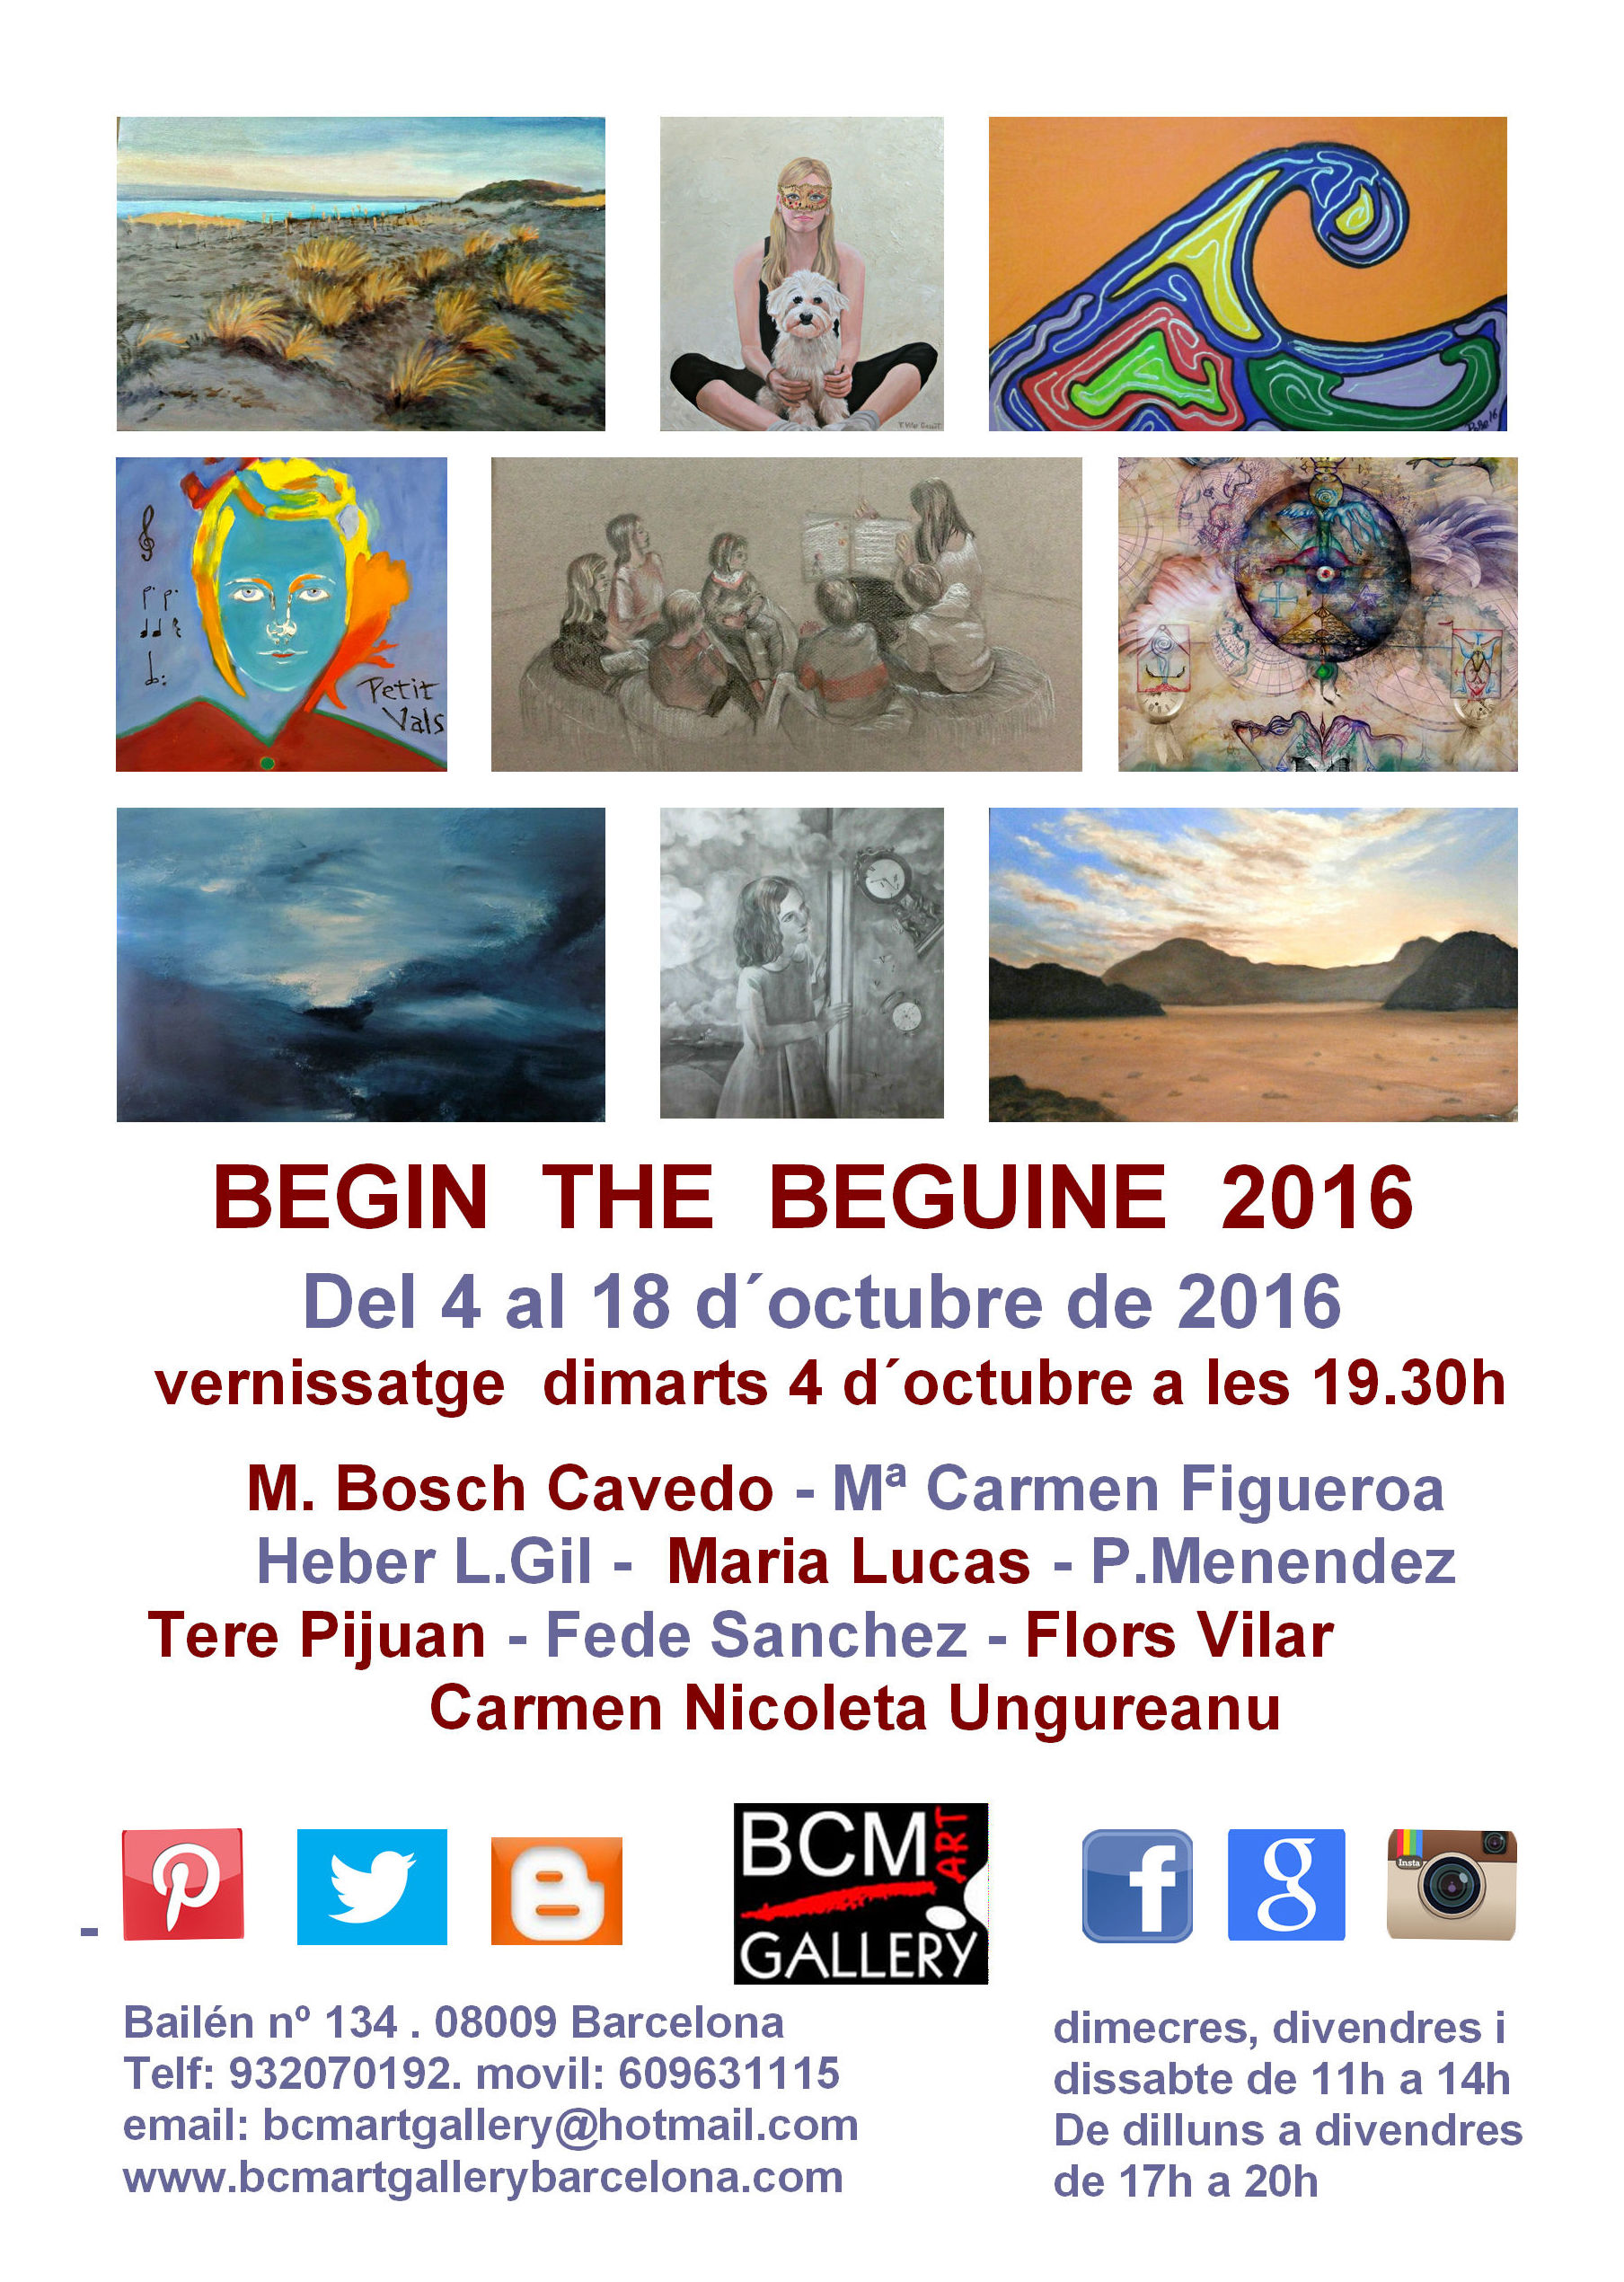 BEGIN THE BEGUINE: Exposiciones y artistas  de BCM Art Gallery